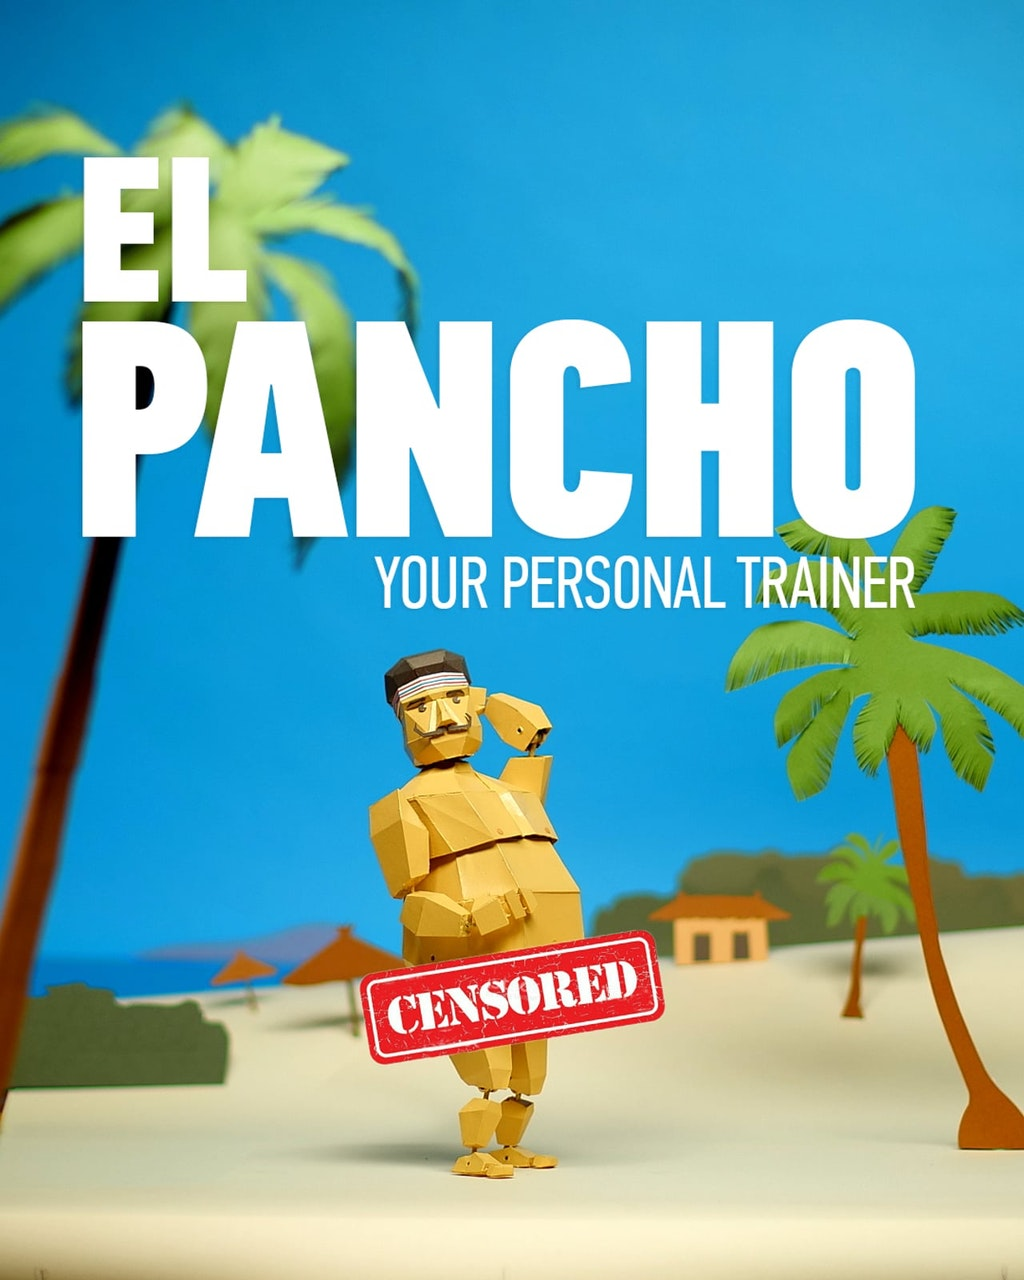 """El Pancho"" - Your Personal Trainer"